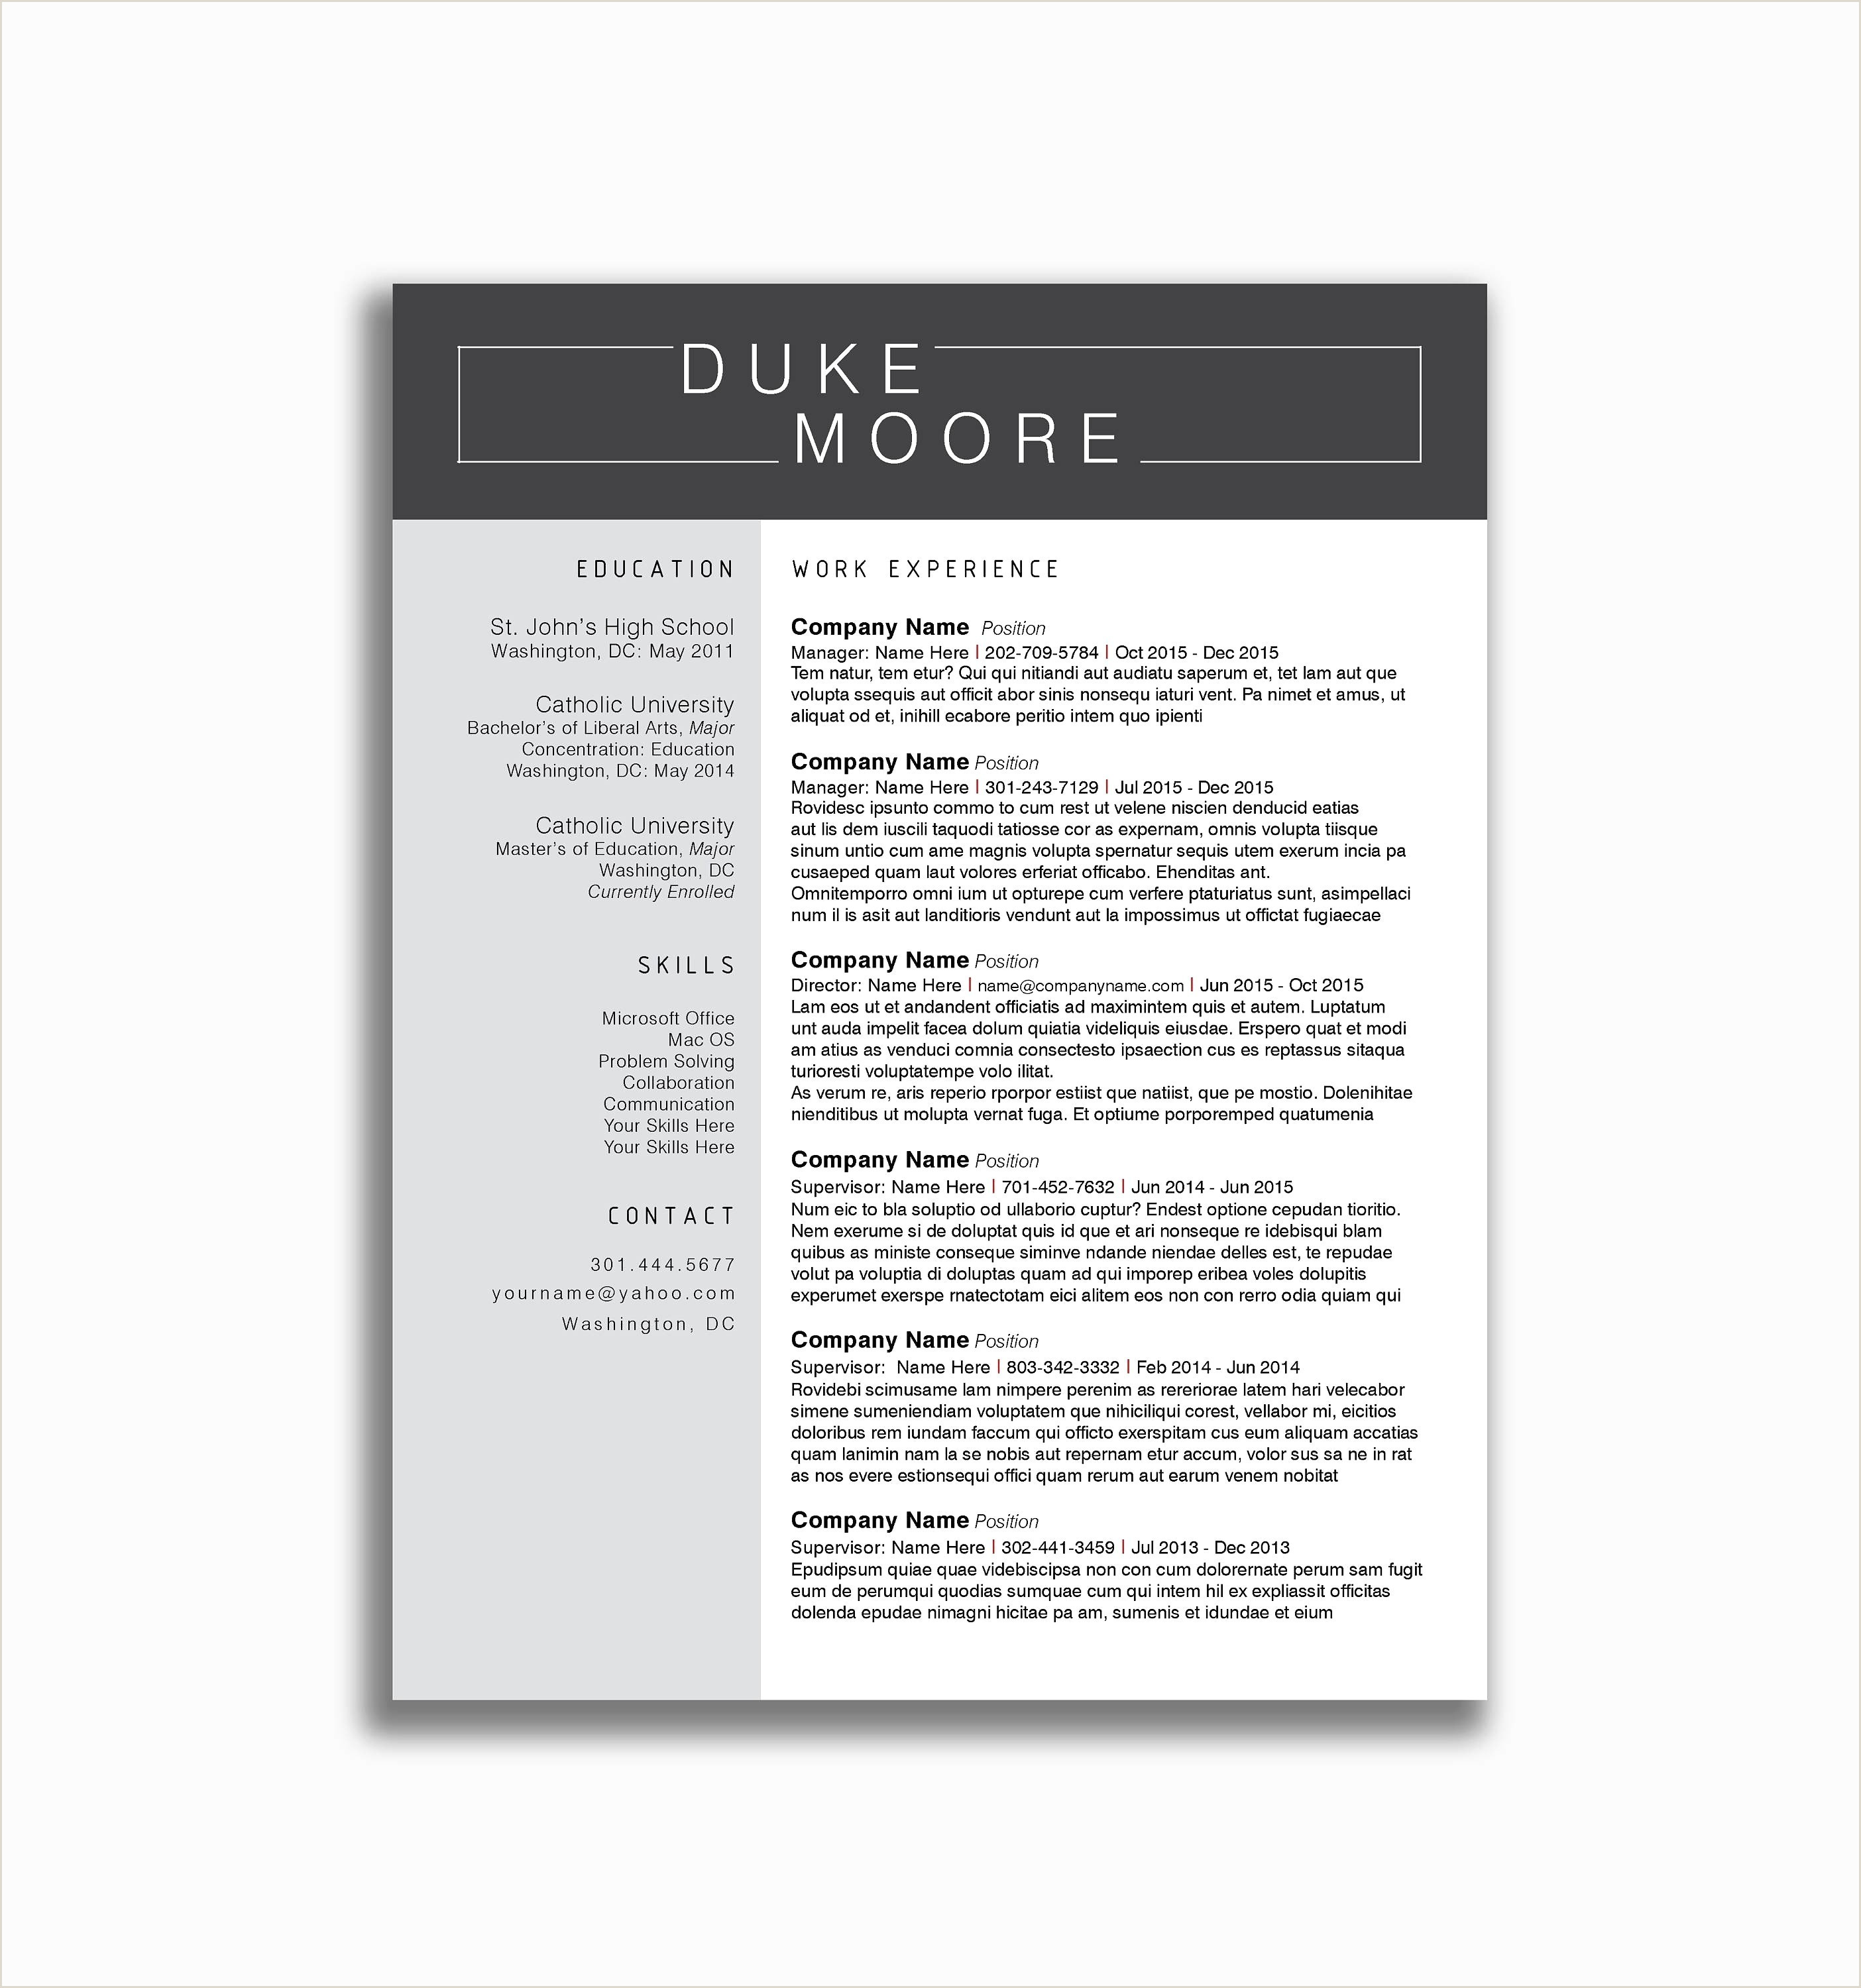 Career counselor resume